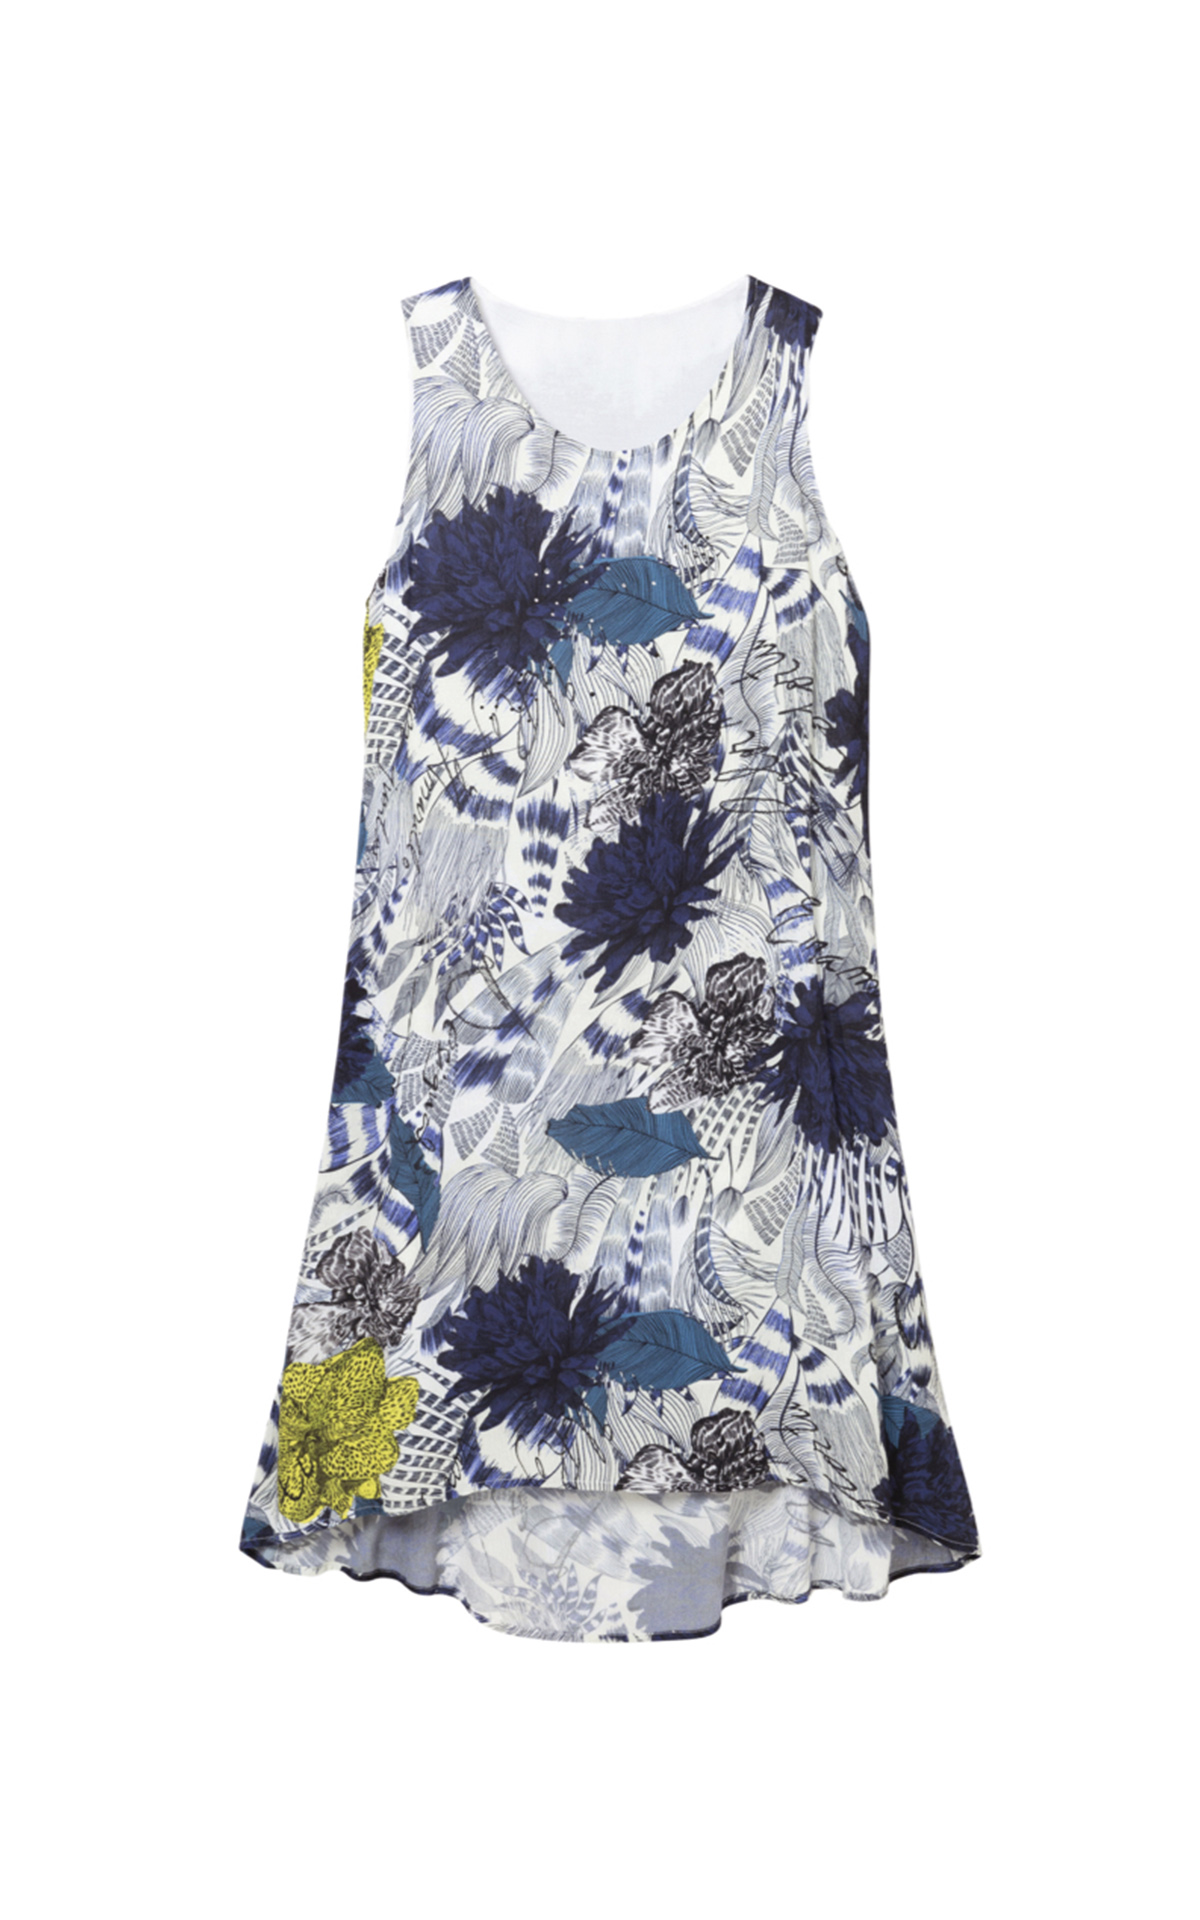 T-shirt with blue flowers for woman Desigual